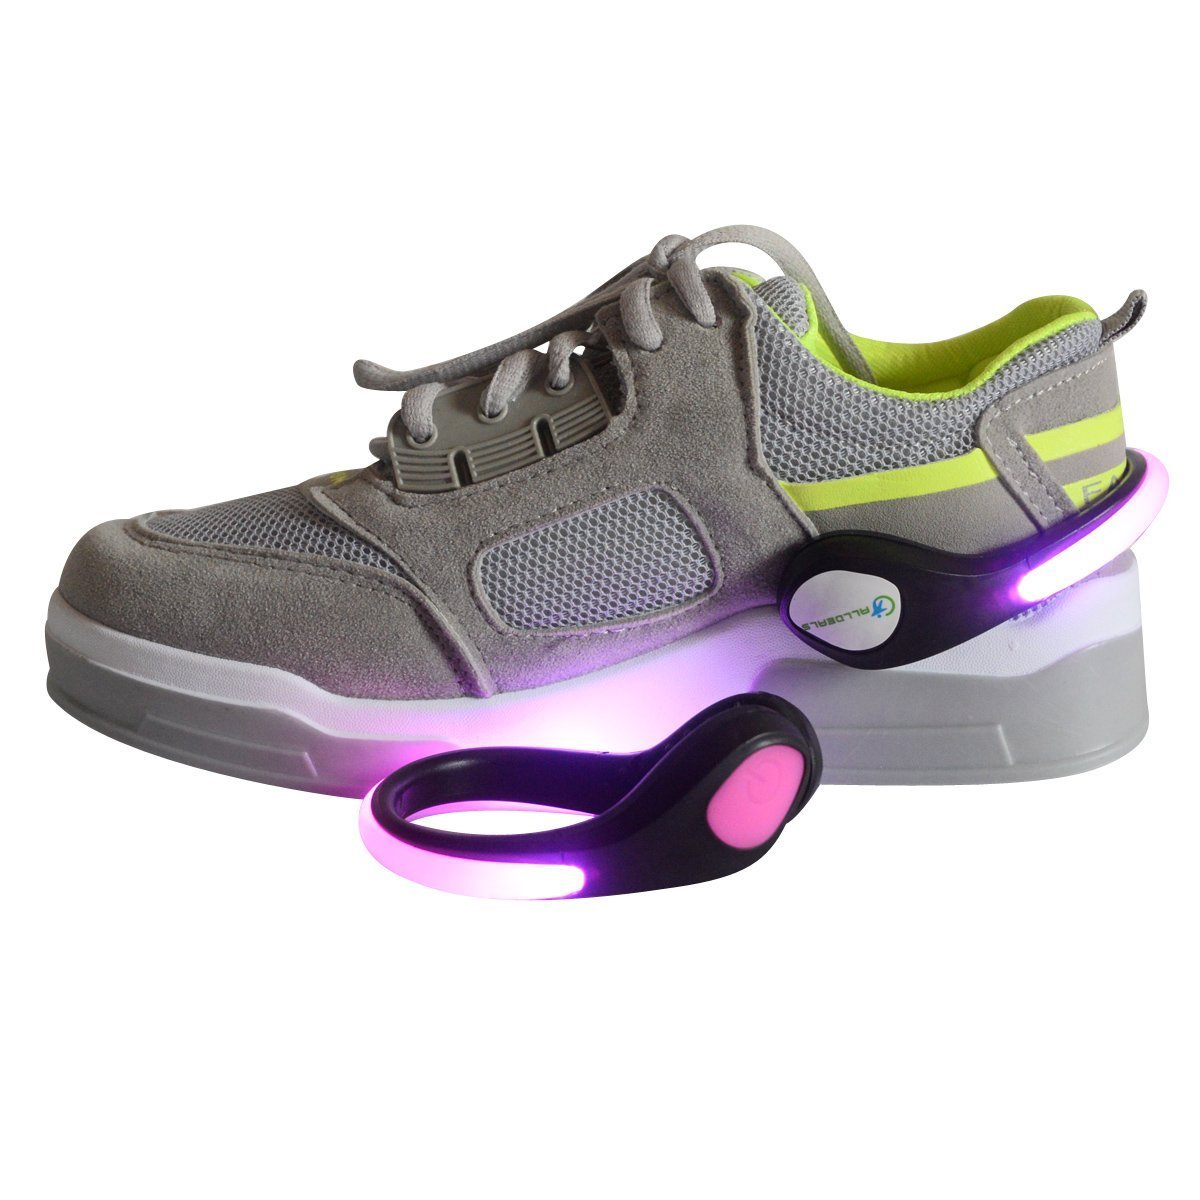 led-shoes-clip-lights-image-2.jpg